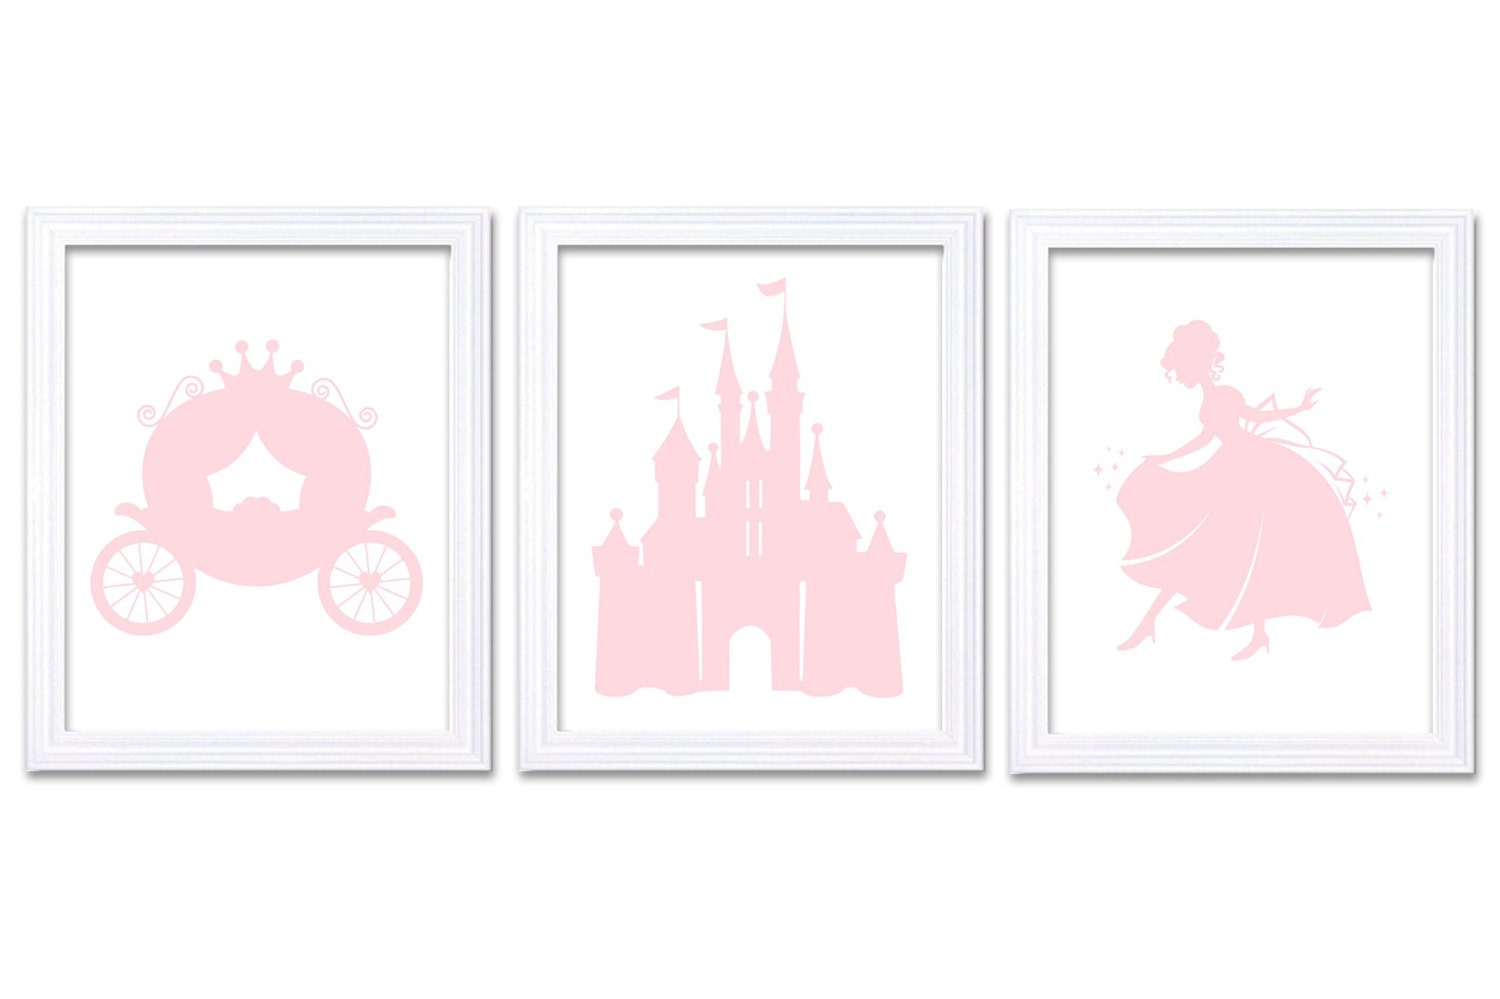 Light Pink White Princess Nursery Art Set of 3 Prints Child Art Kids Room Wall Art Baby Girl Decor B